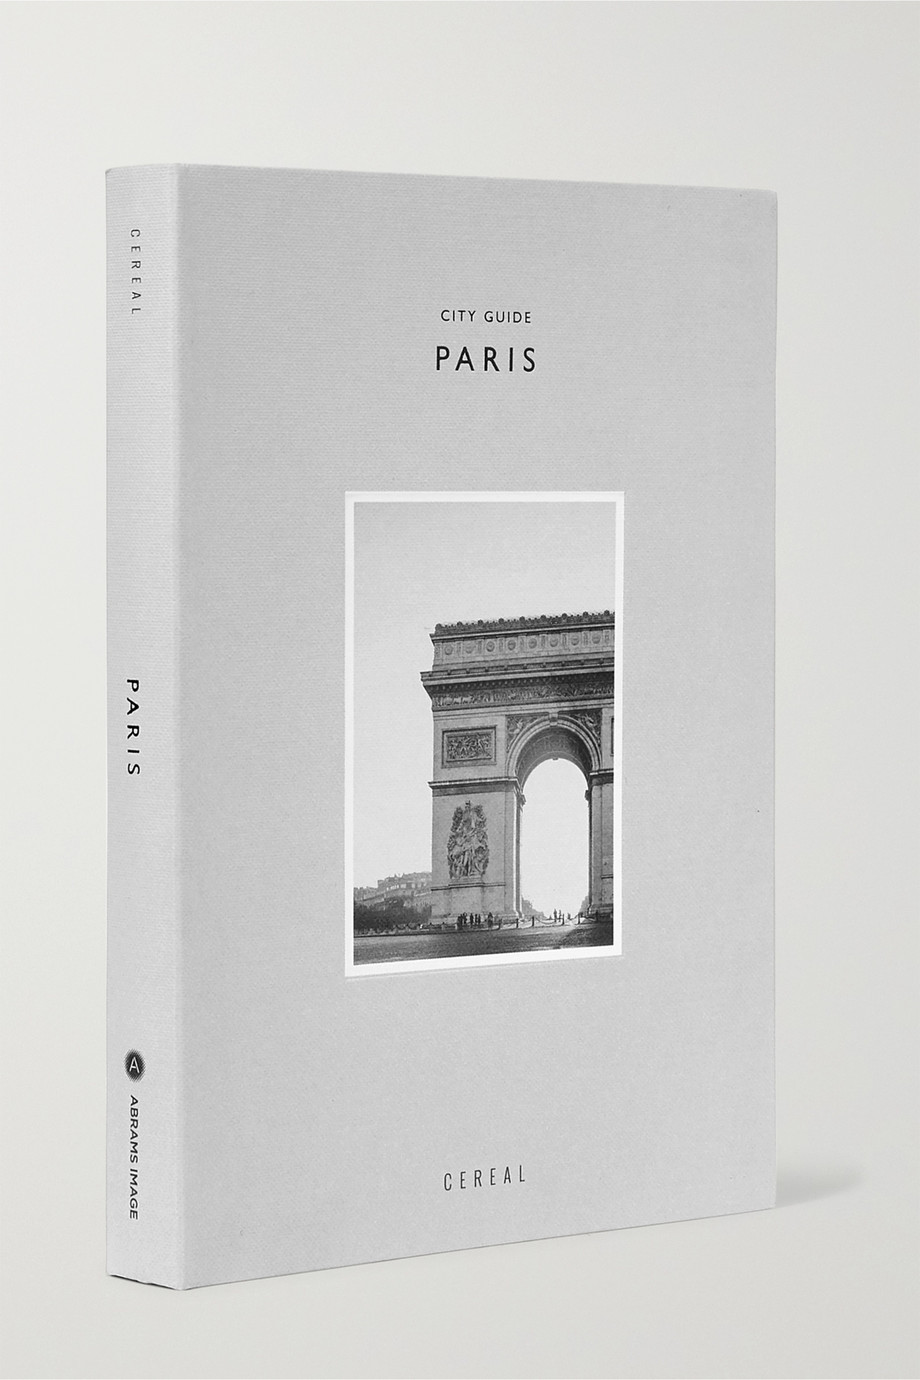 Abrams Cereal City Guide: Paris paperback book